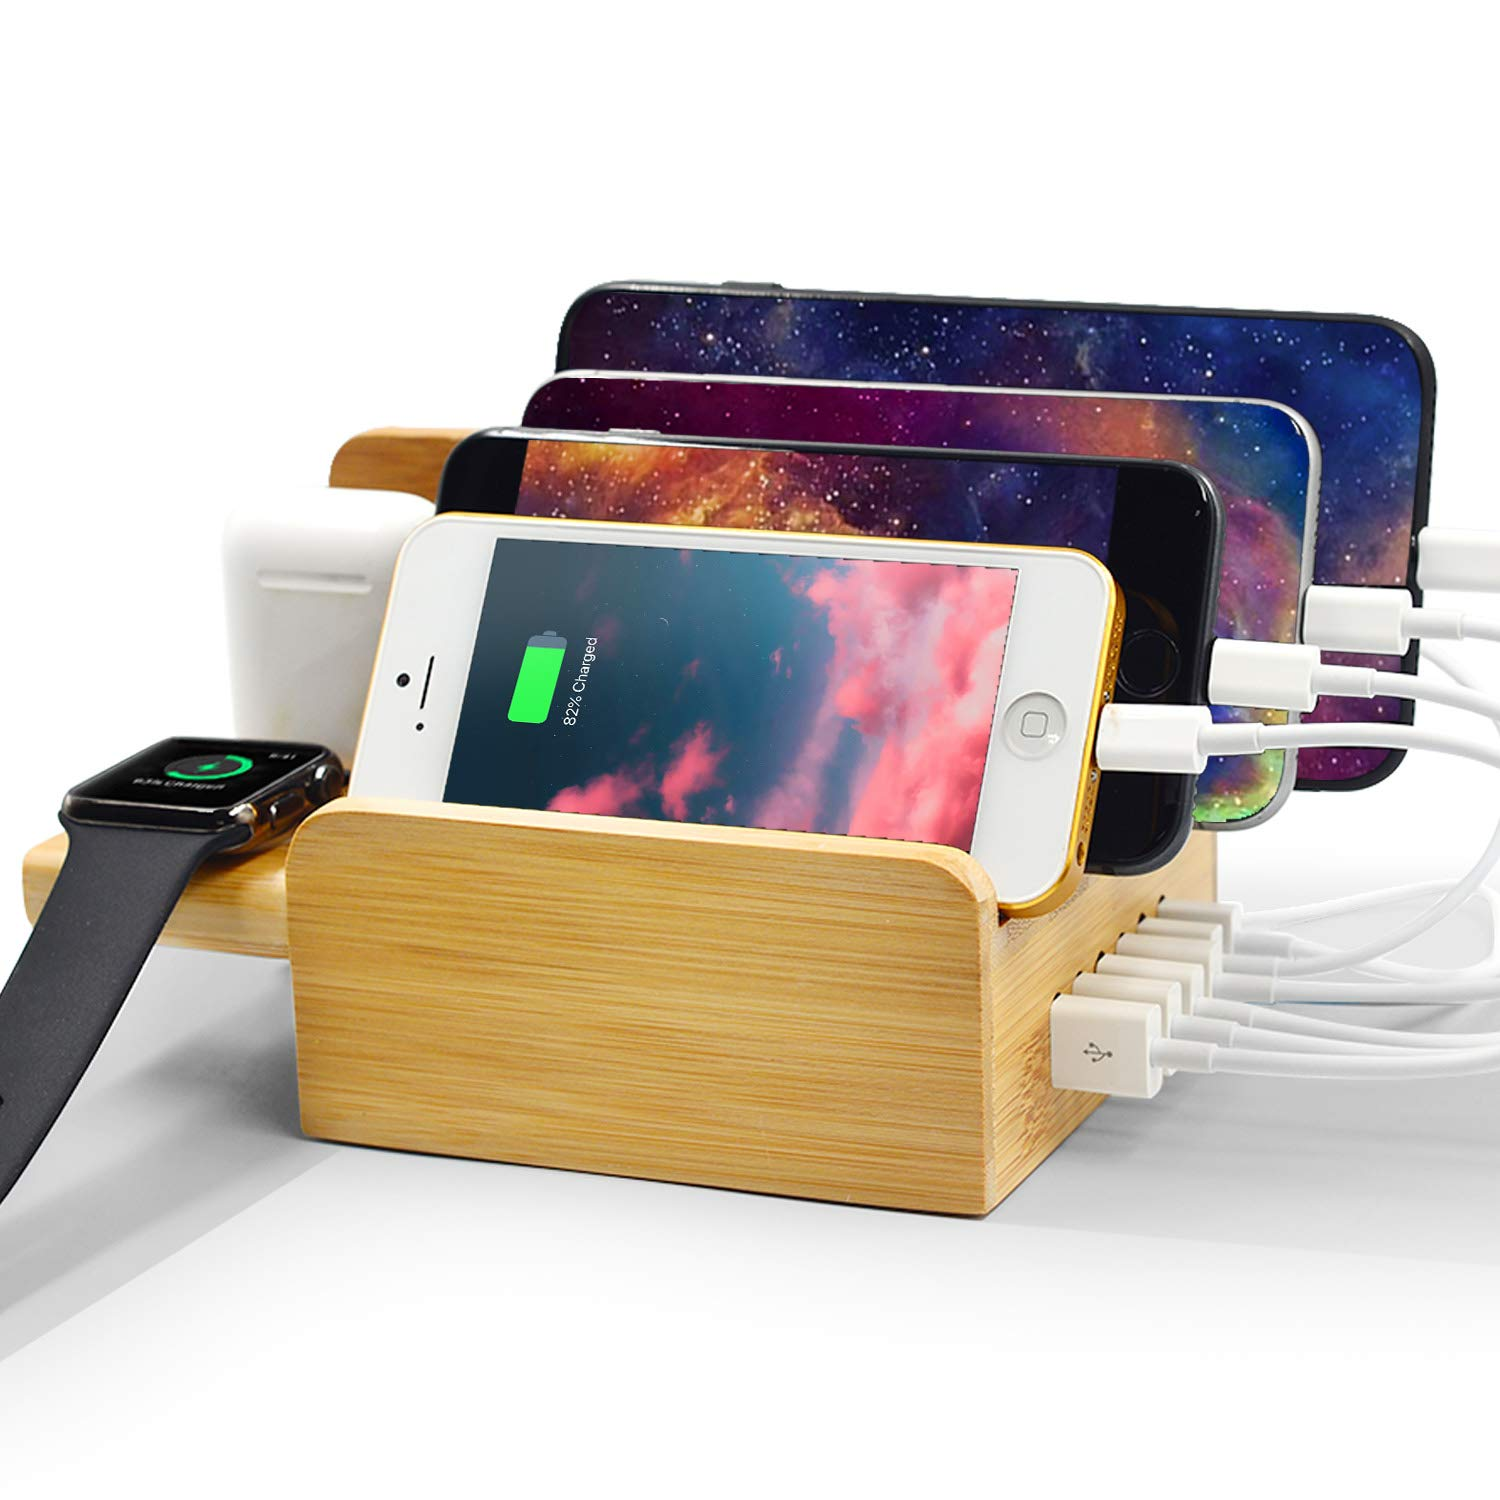 Charging Station, WXTOOLS 6-Port Bamboo Organizer Wood USB Charger Station Desk Dock Holder Stand Accessories for Multiple Devices, Compatible with Watch/Airpods/Phone/Tablet by WXTOOLS